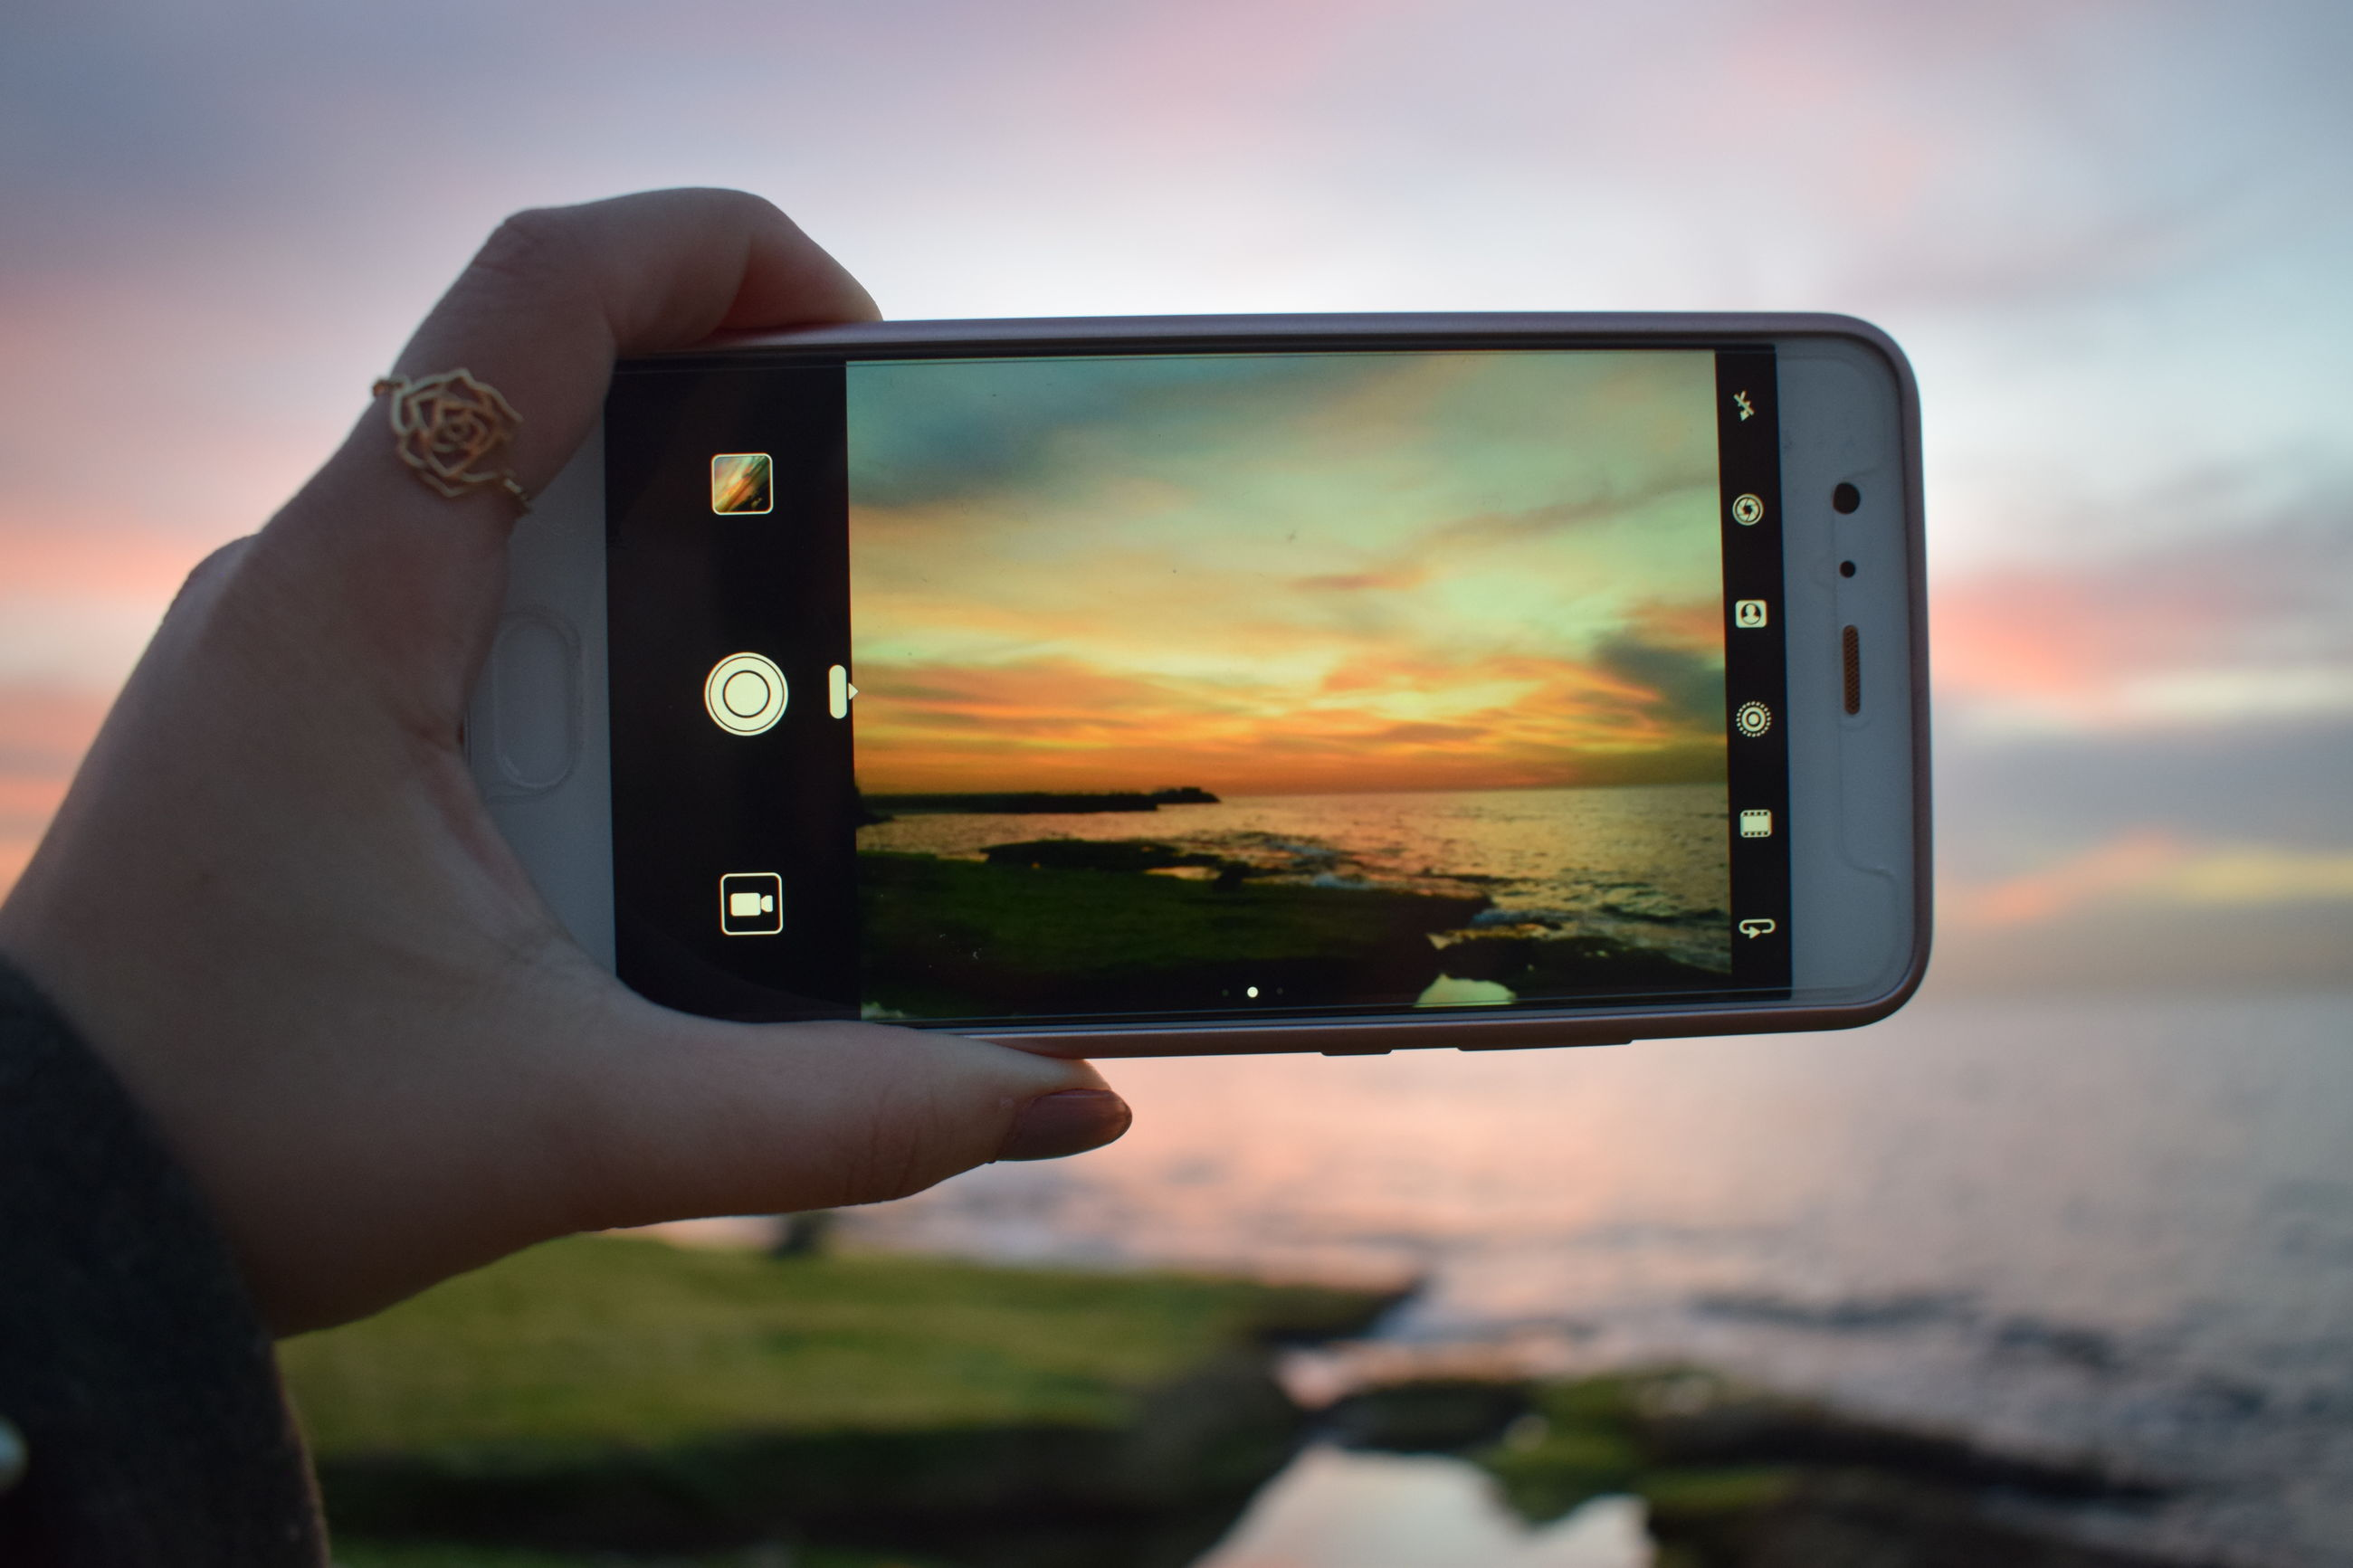 technology, photography themes, wireless technology, human hand, holding, sunset, hand, one person, human body part, communication, sky, real people, smart phone, photographing, connection, portable information device, screen, mobile phone, focus on foreground, activity, outdoors, finger